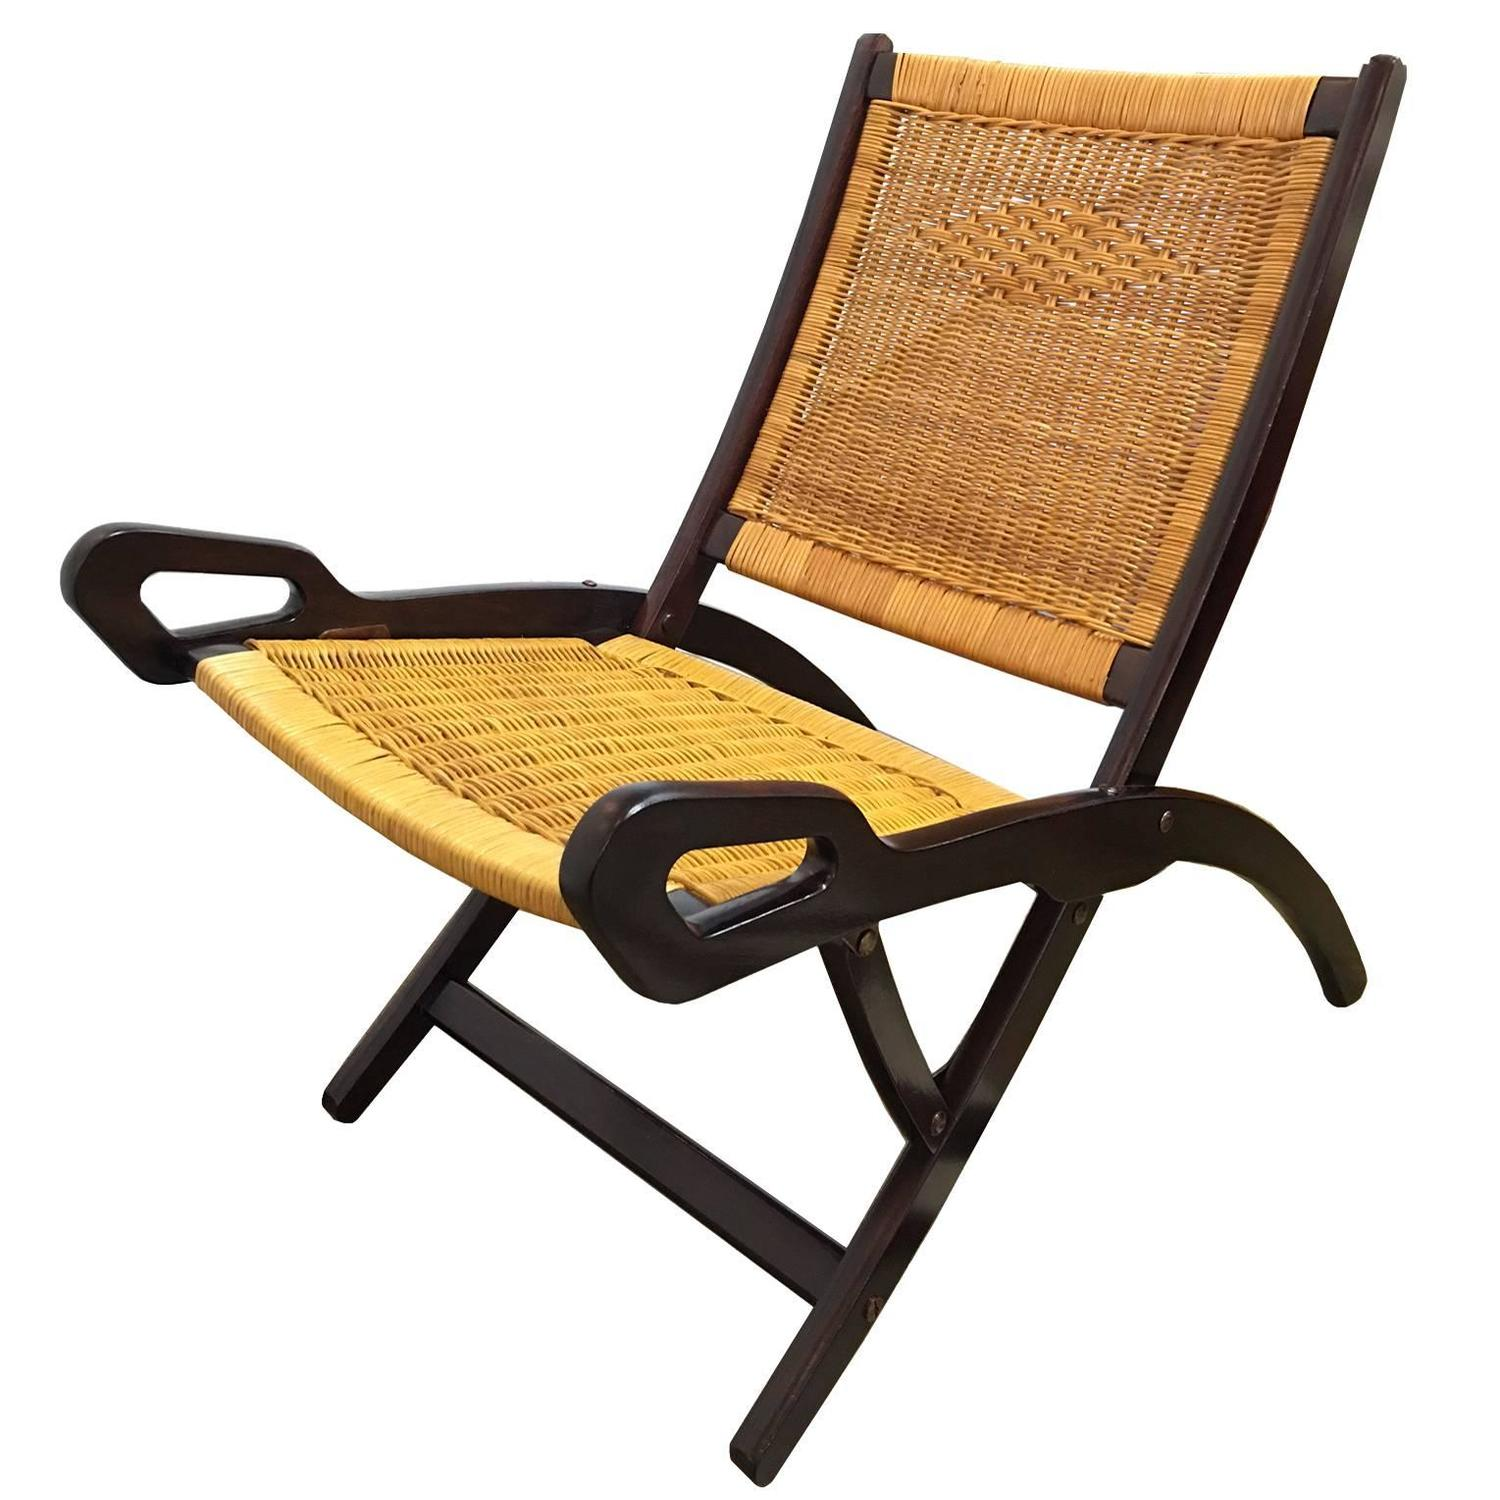 Gio Ponti for Brevetti Reguitti Ninfea folding chair at 1stdibs